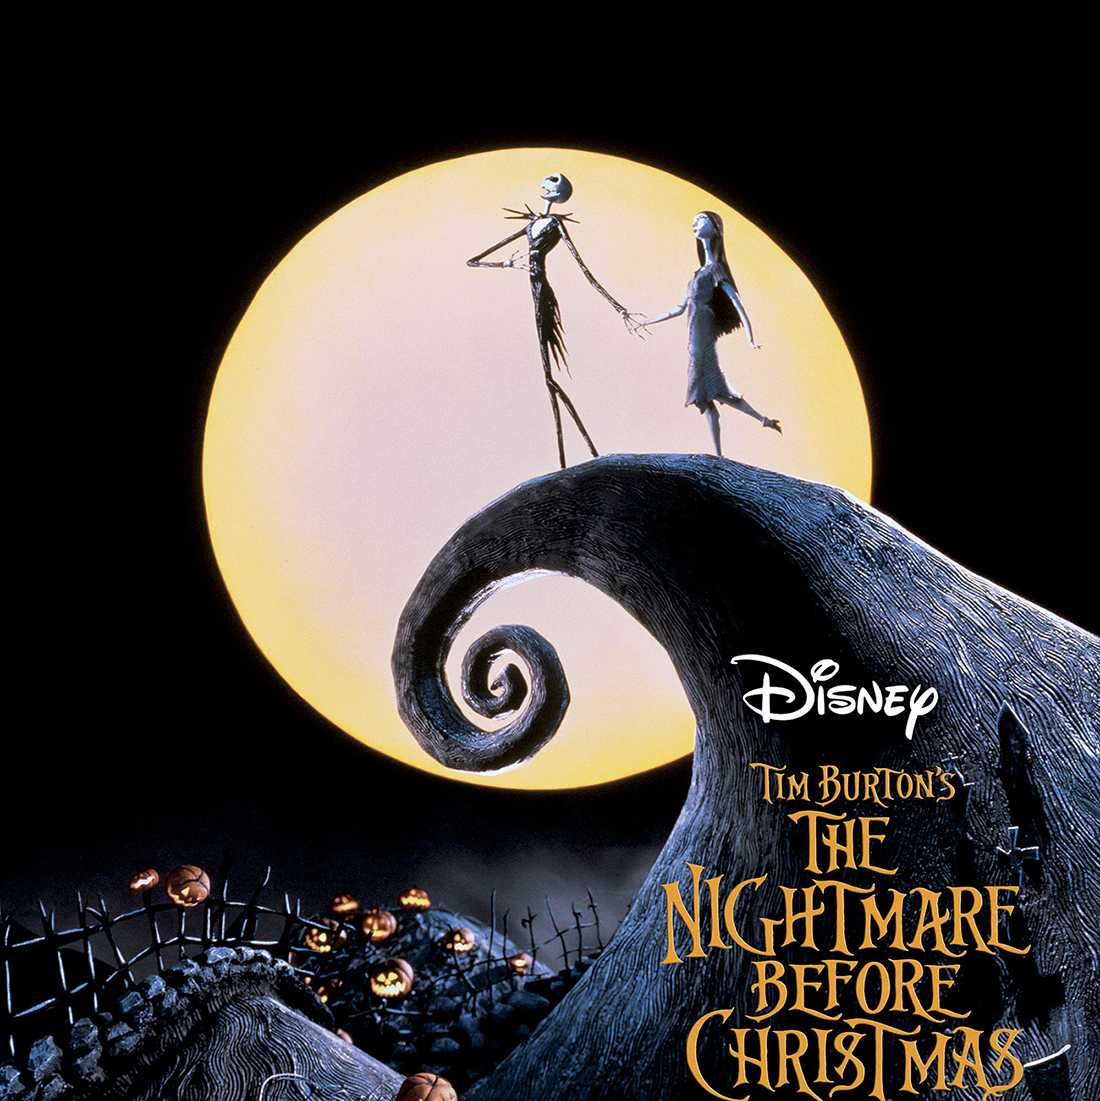 """Nightmare Before Christmas"" is one of Tim Burton's signature films to be featured at Saturday's performance."